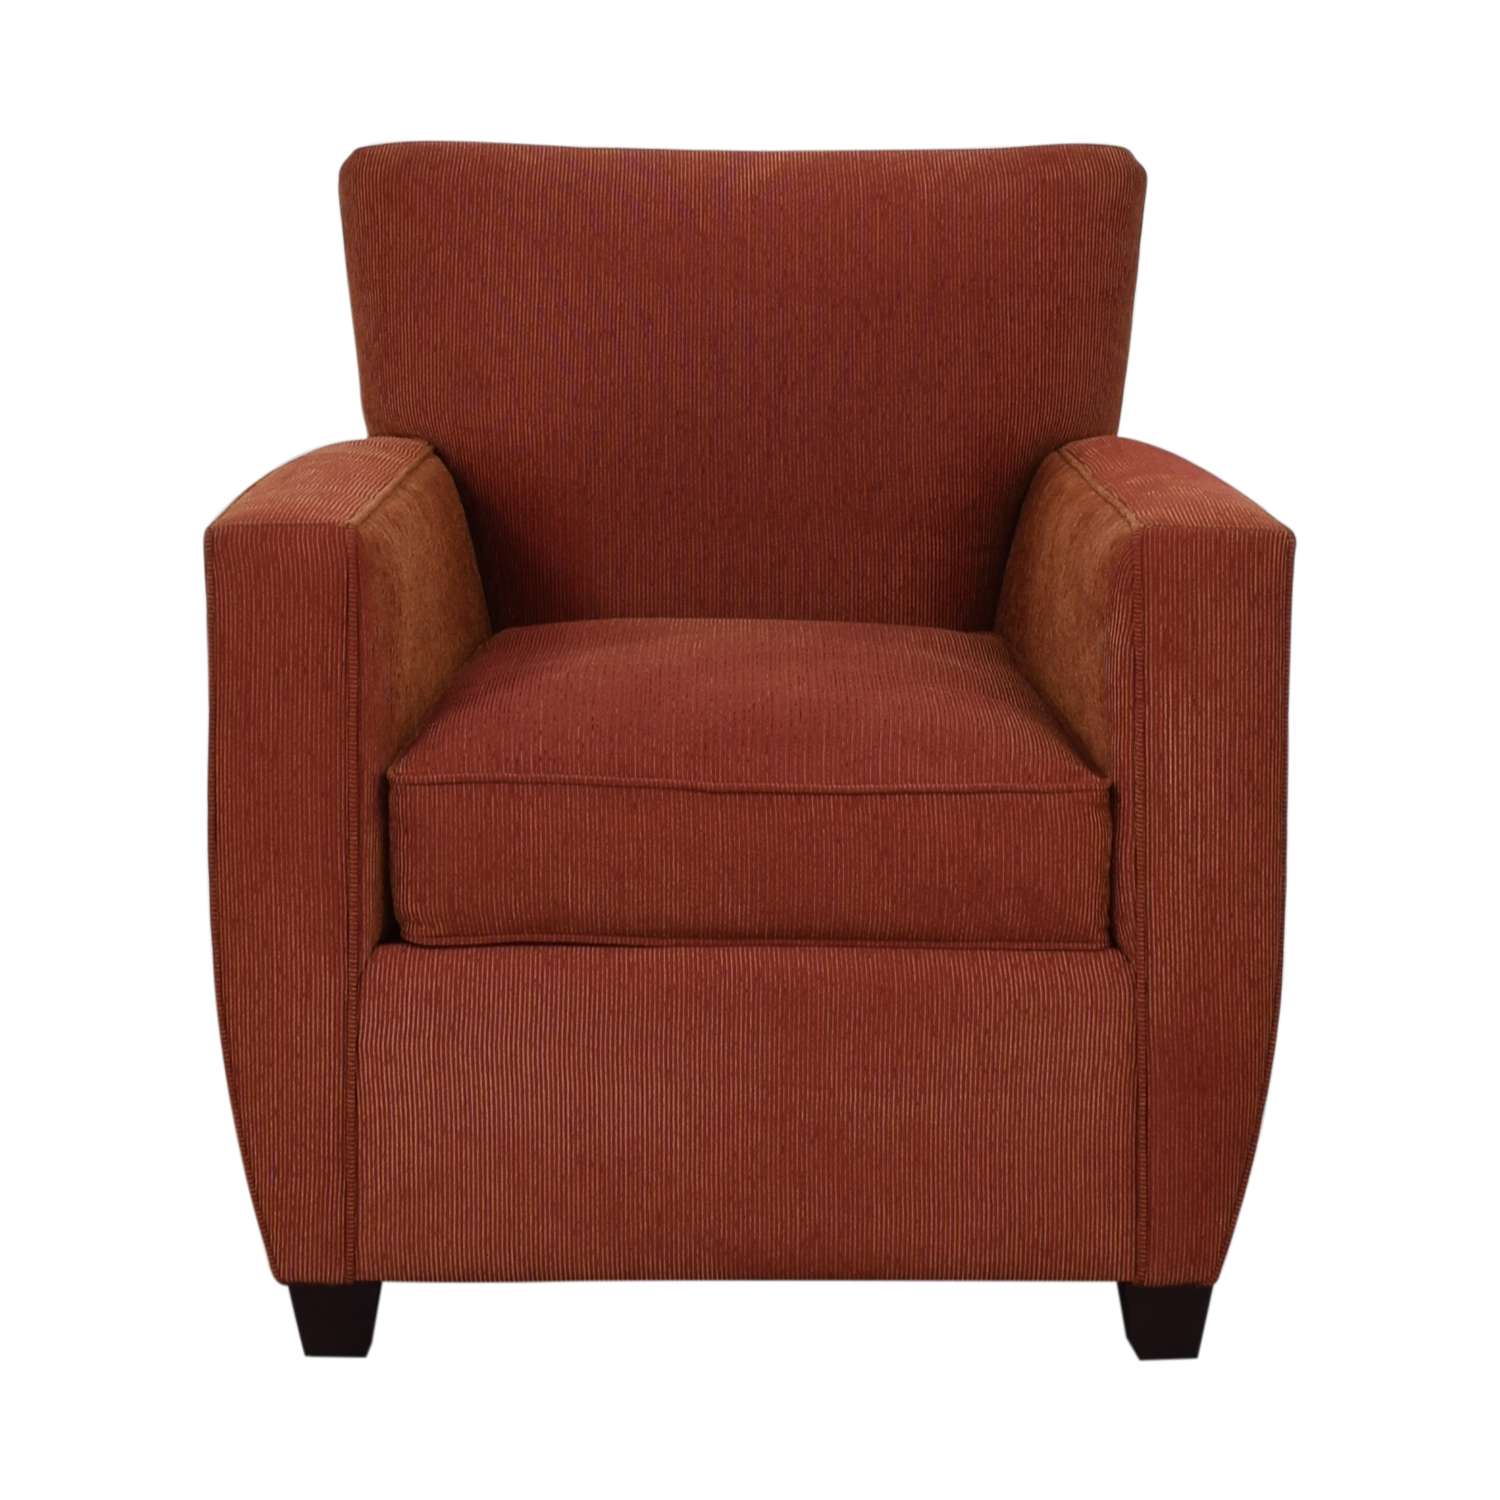 Crate & Barrel Crate & Barrel Chili Red Accent Chair Chili Red